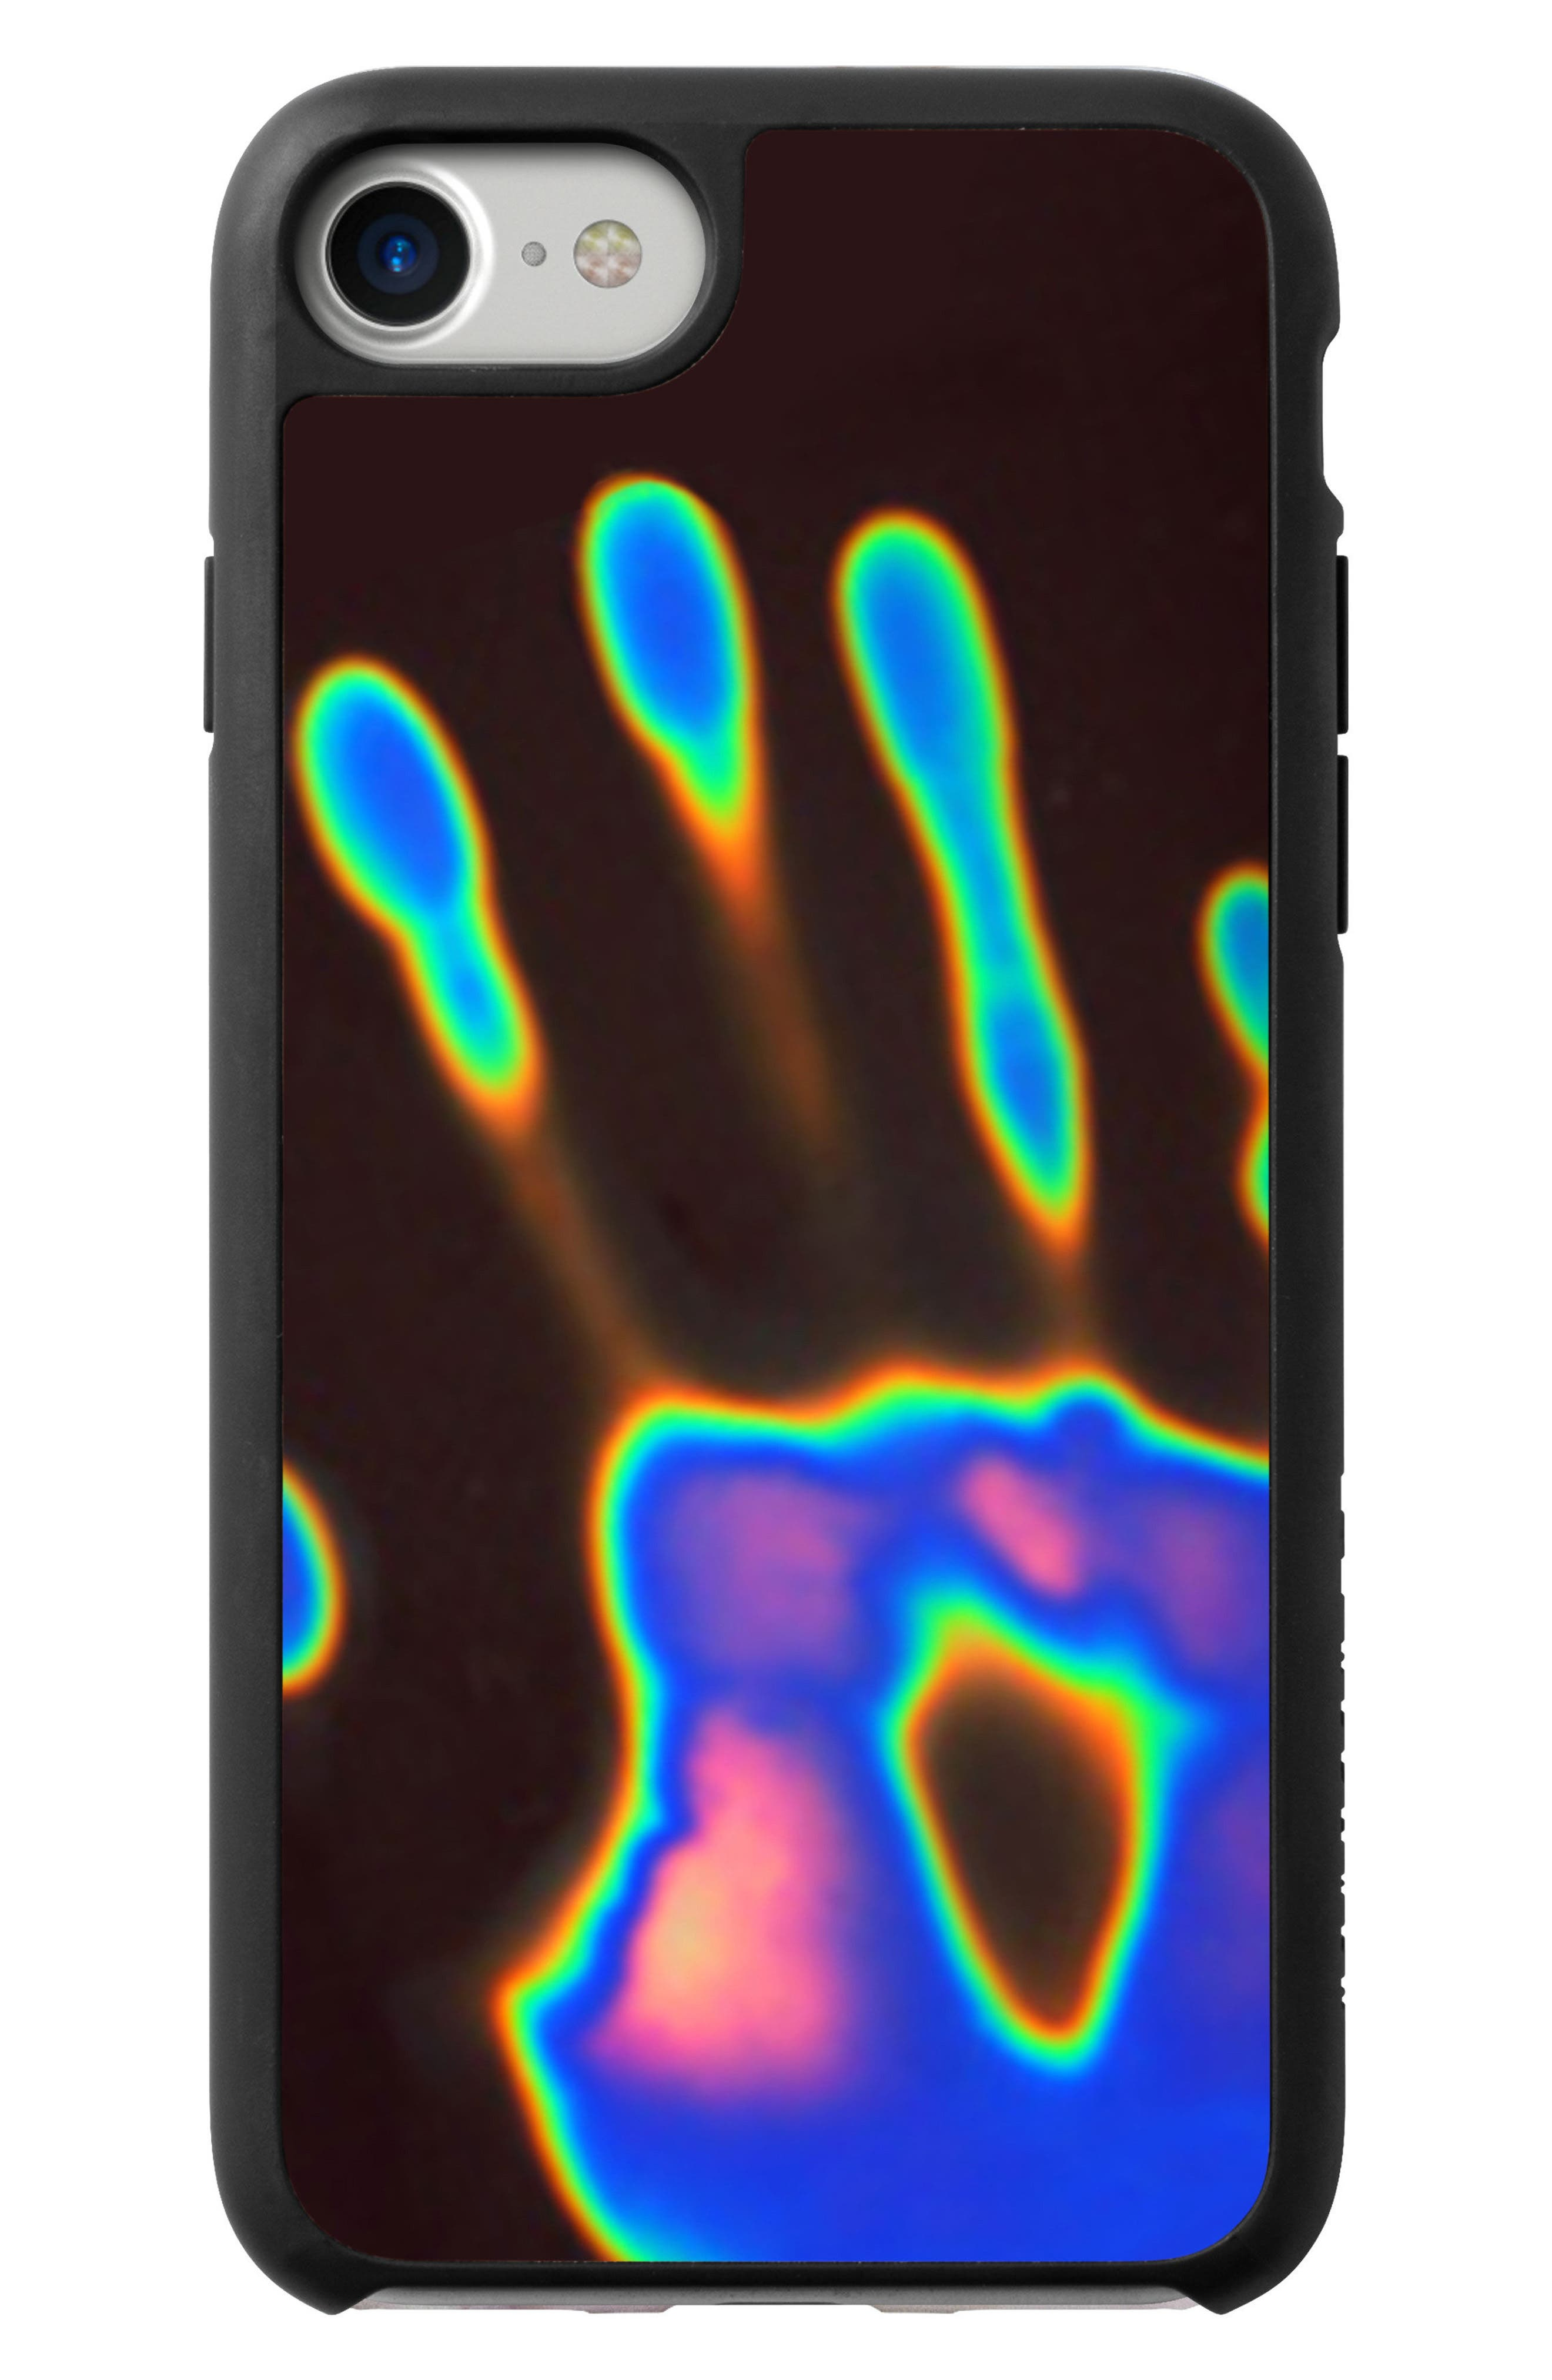 iphone 7 cases. recover mood ring thermochromic iphone 6/6s/7/8 case iphone 7 cases